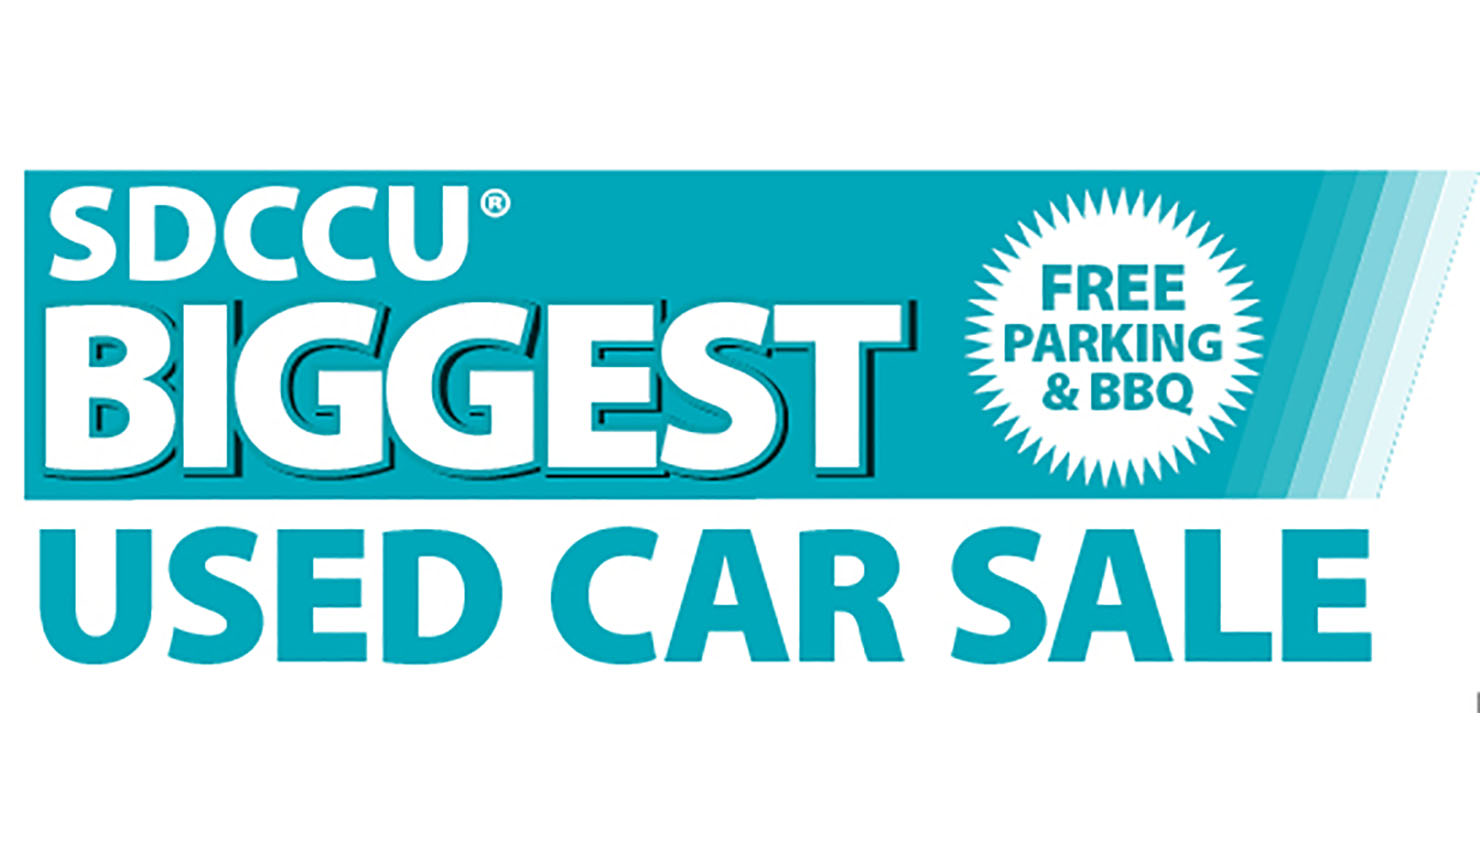 sdccu biggest used car sale poster